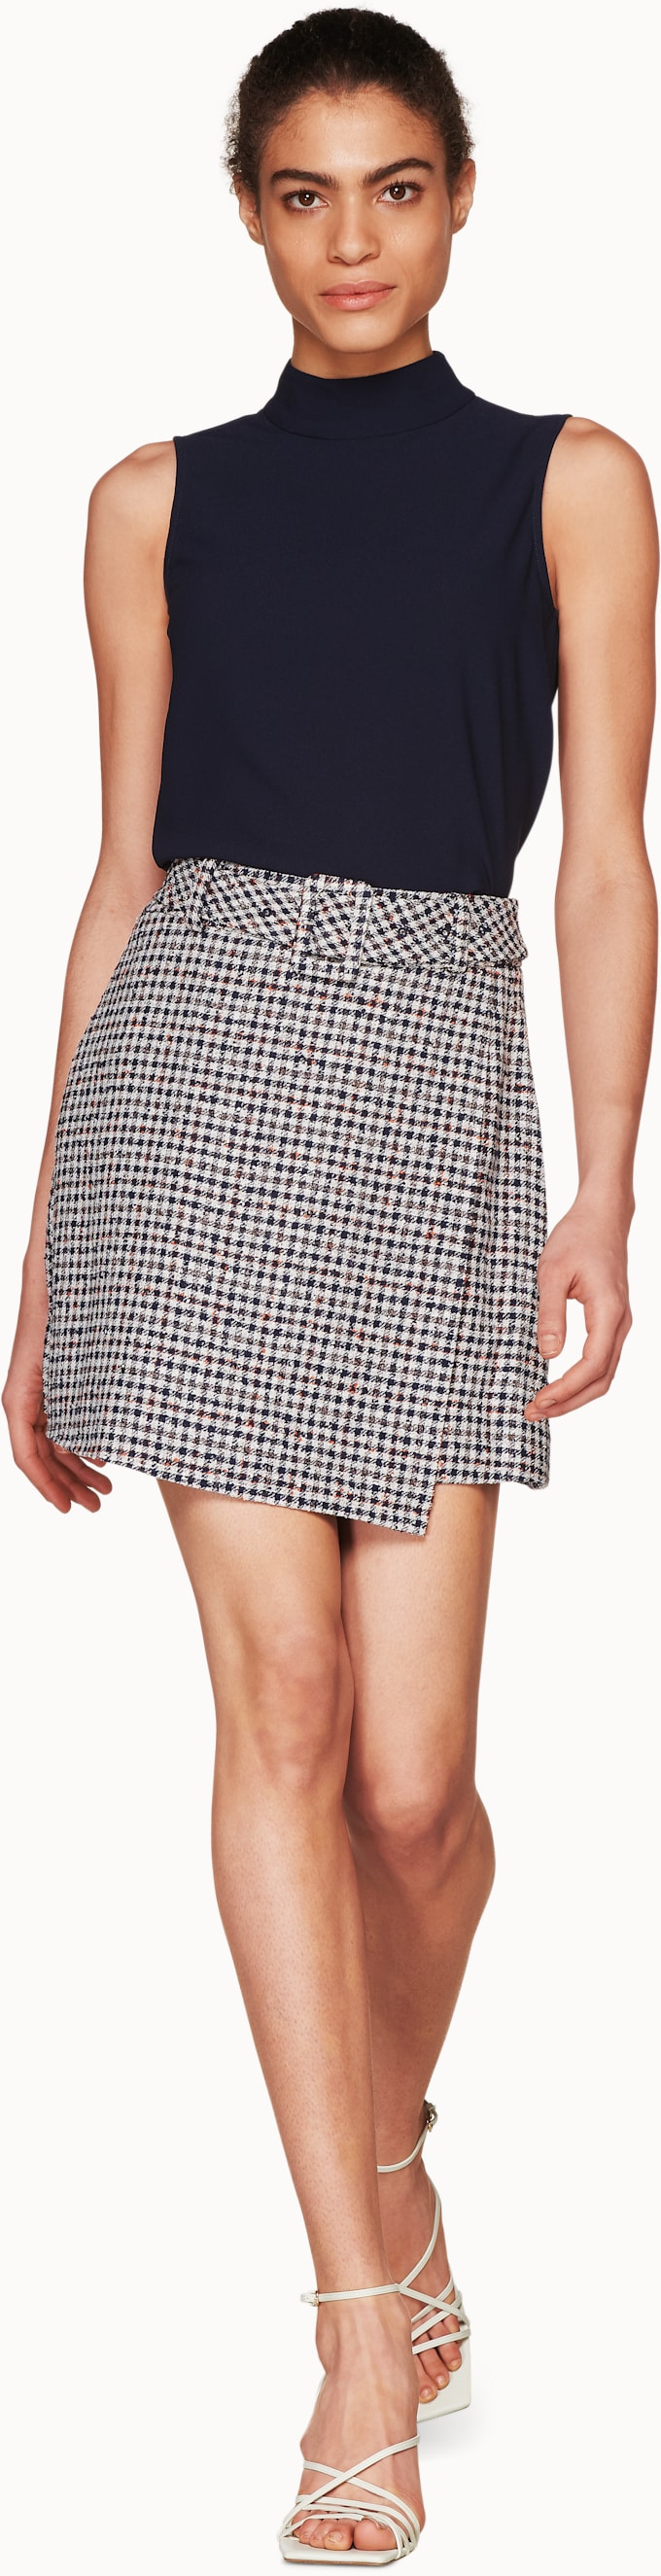 5729dcf5a4 Calvin Navy & Chocolate Checked Skirt $299 USD Tailored to an A-line fit  with a high rise waist, this Calvin mini wrap skirt features a  fabric-covered belt.